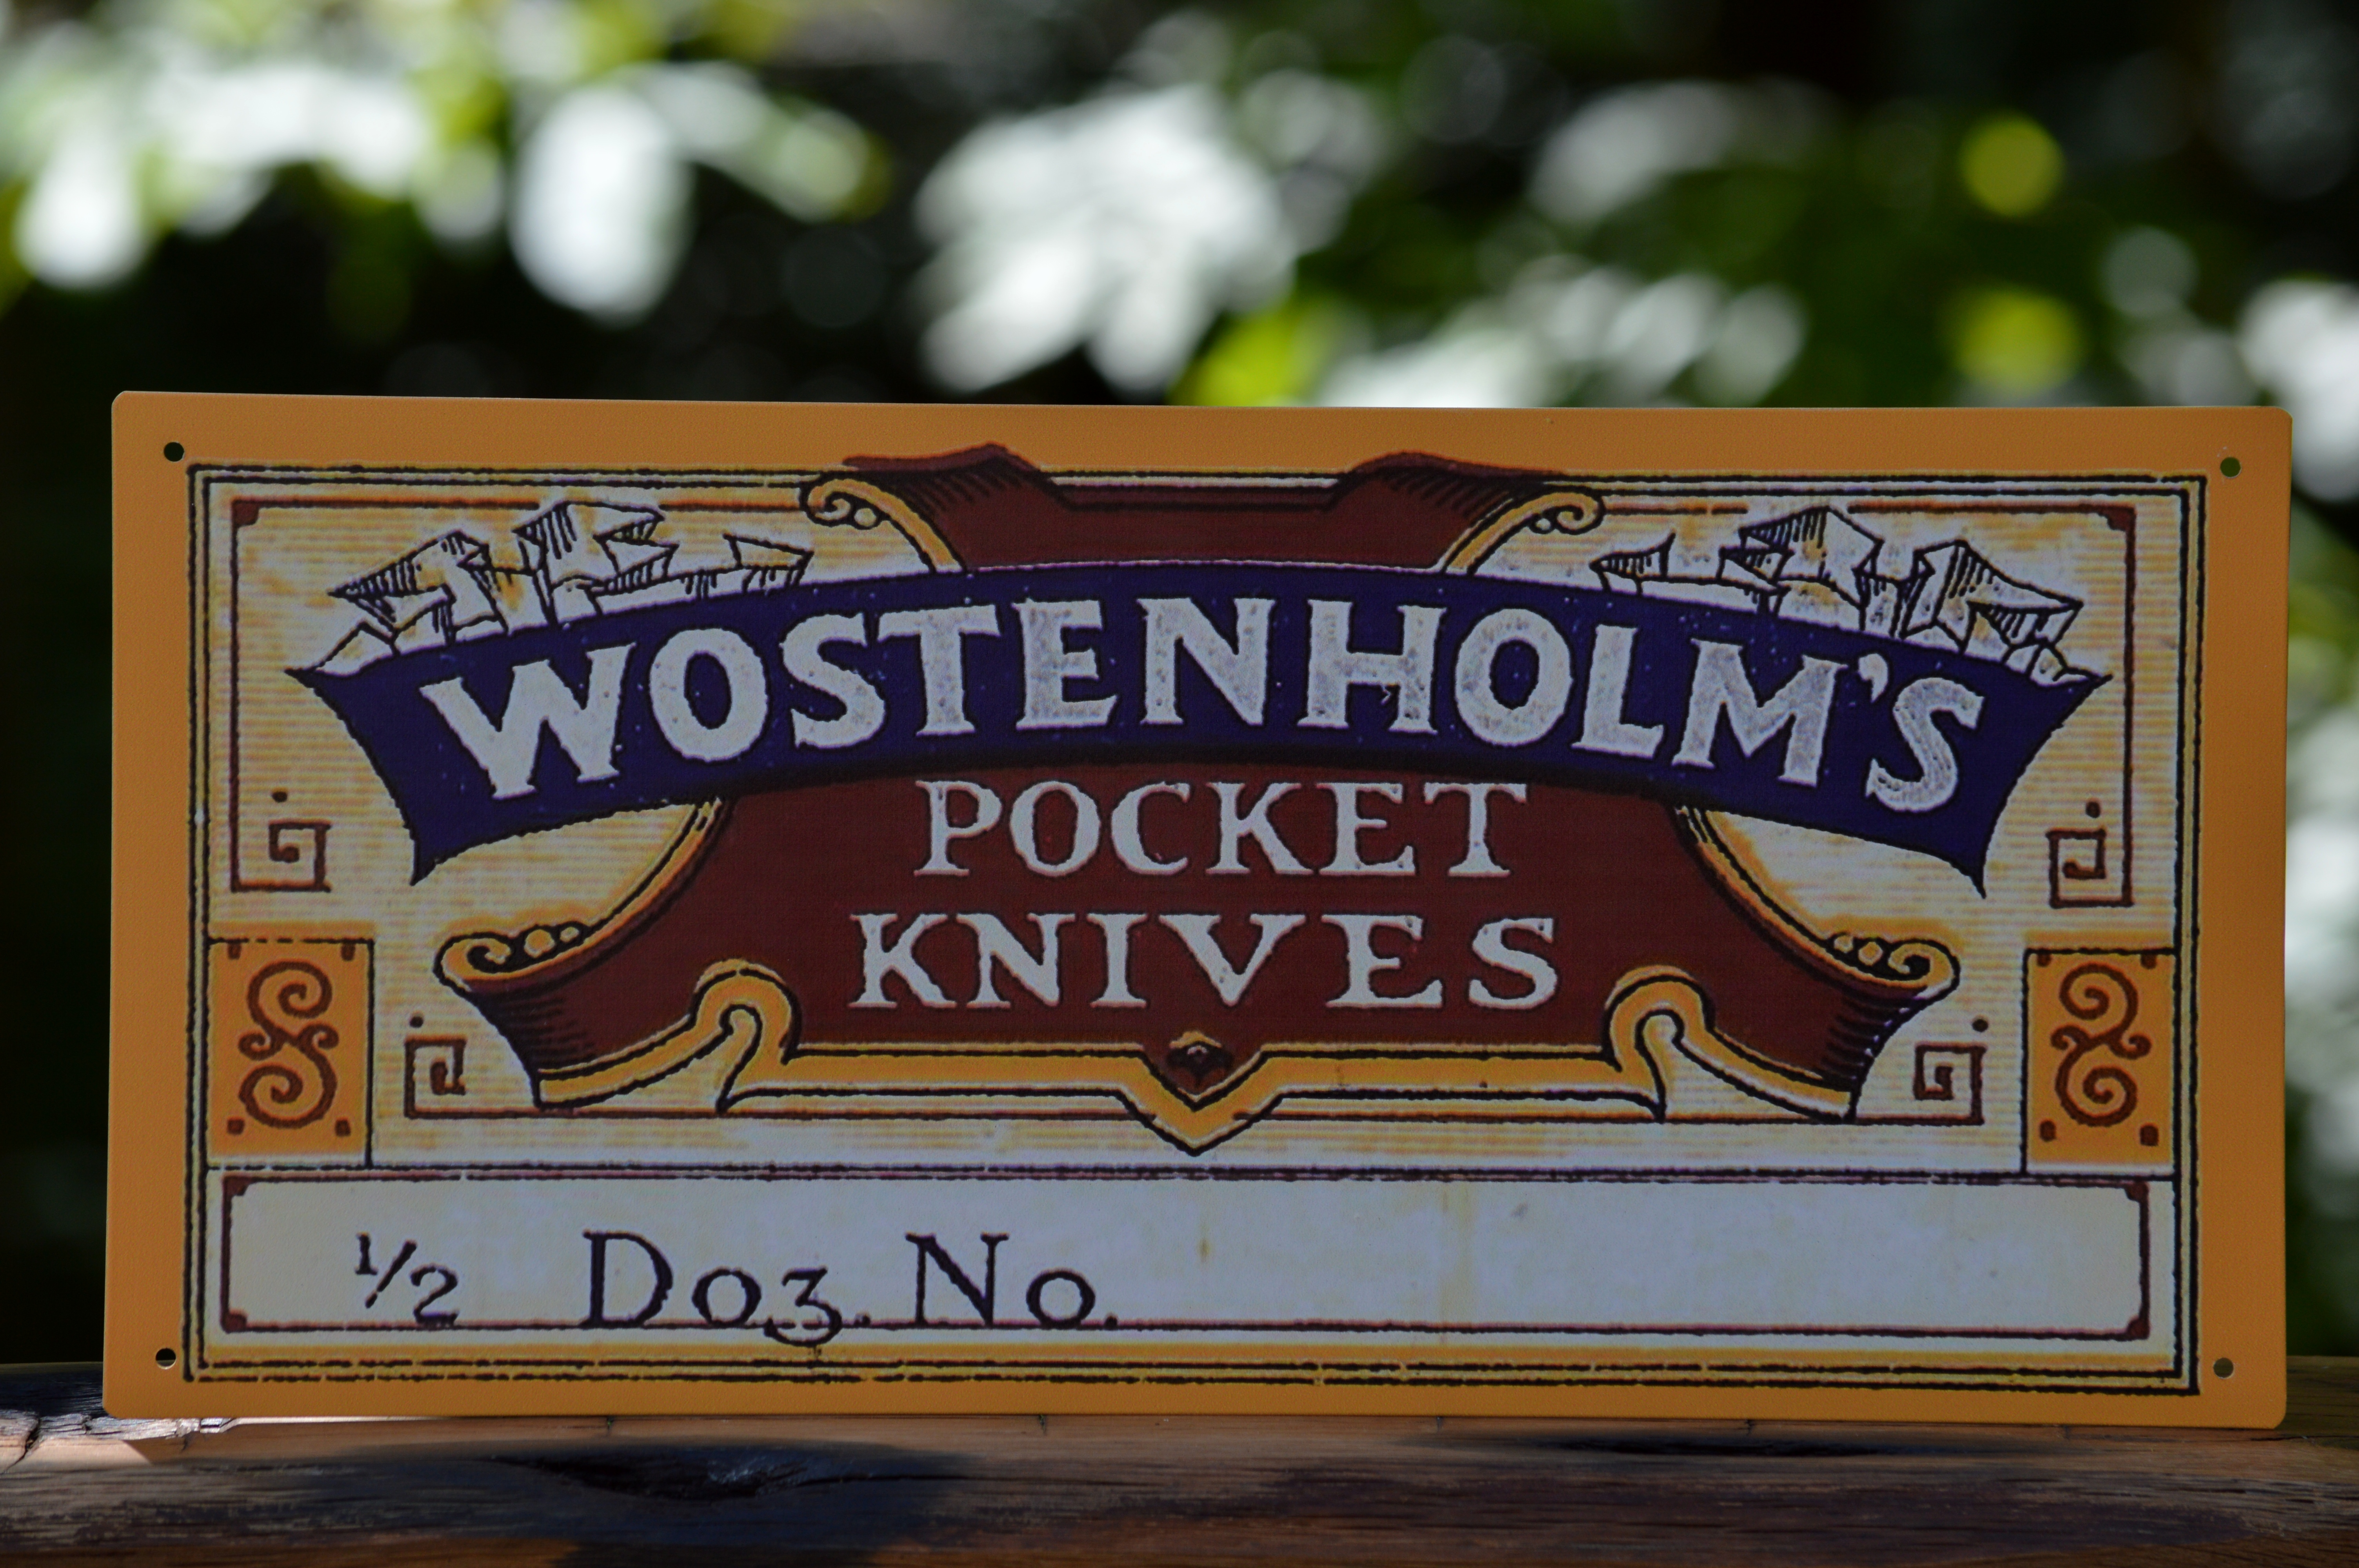 Wostenholm Pocket Knives Vintage Tin Sign